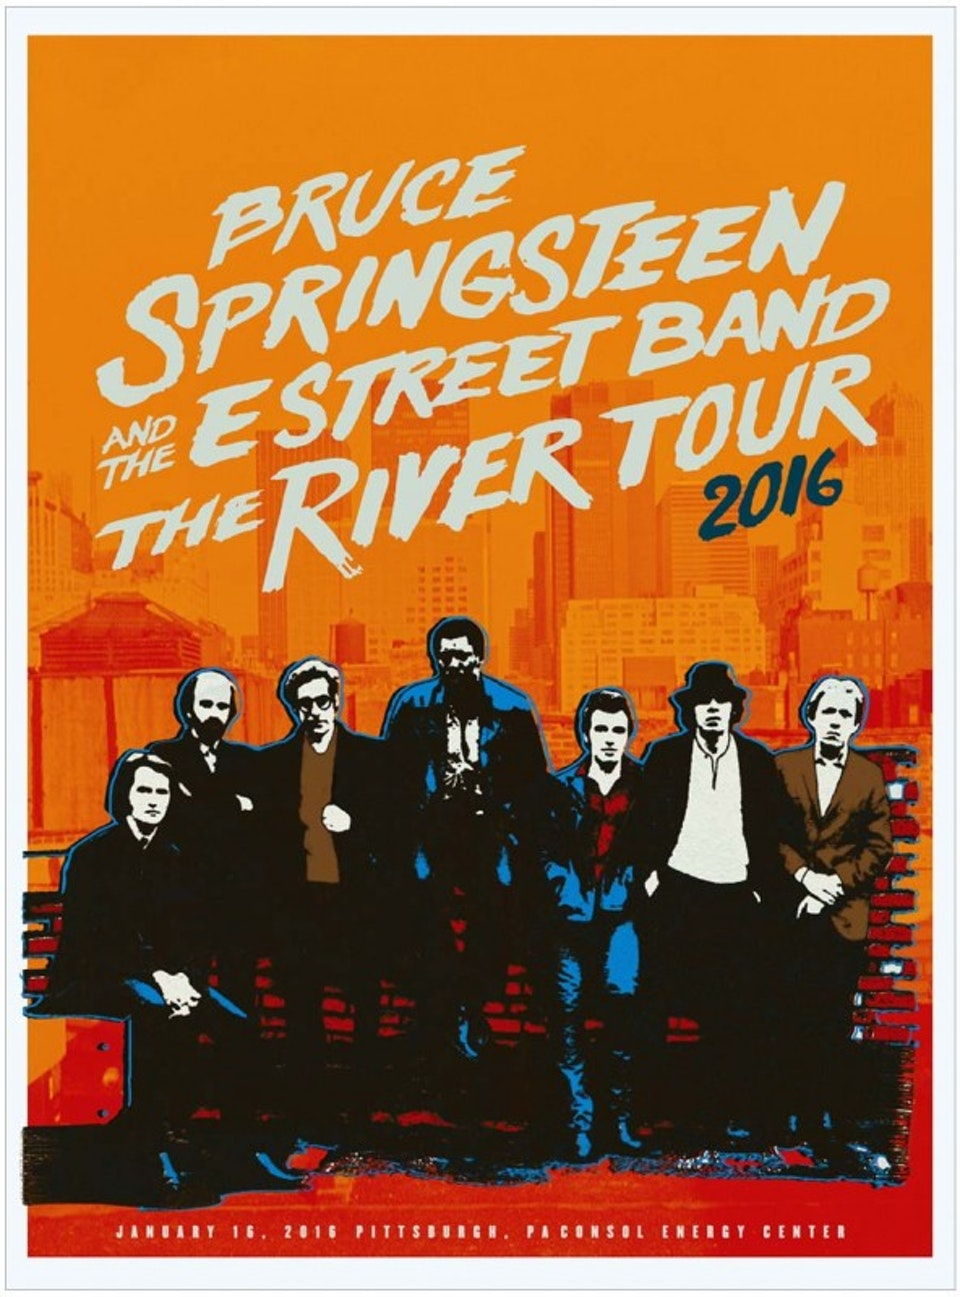 The River Tour Posters - Gig poster for the Pittsburgh show